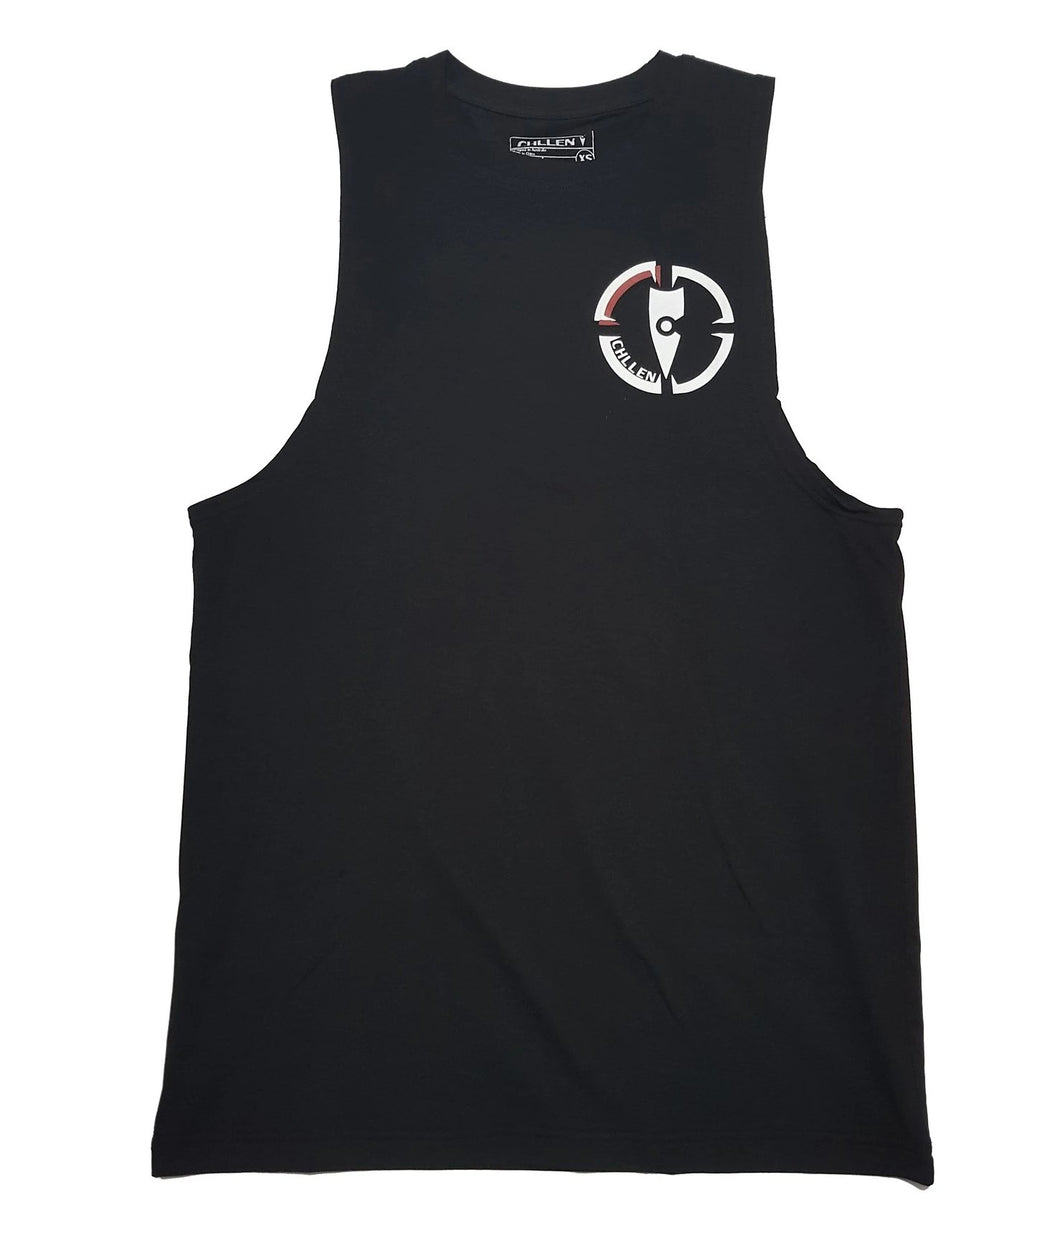 chillen chllen lifestyle wear black tank top singlet long